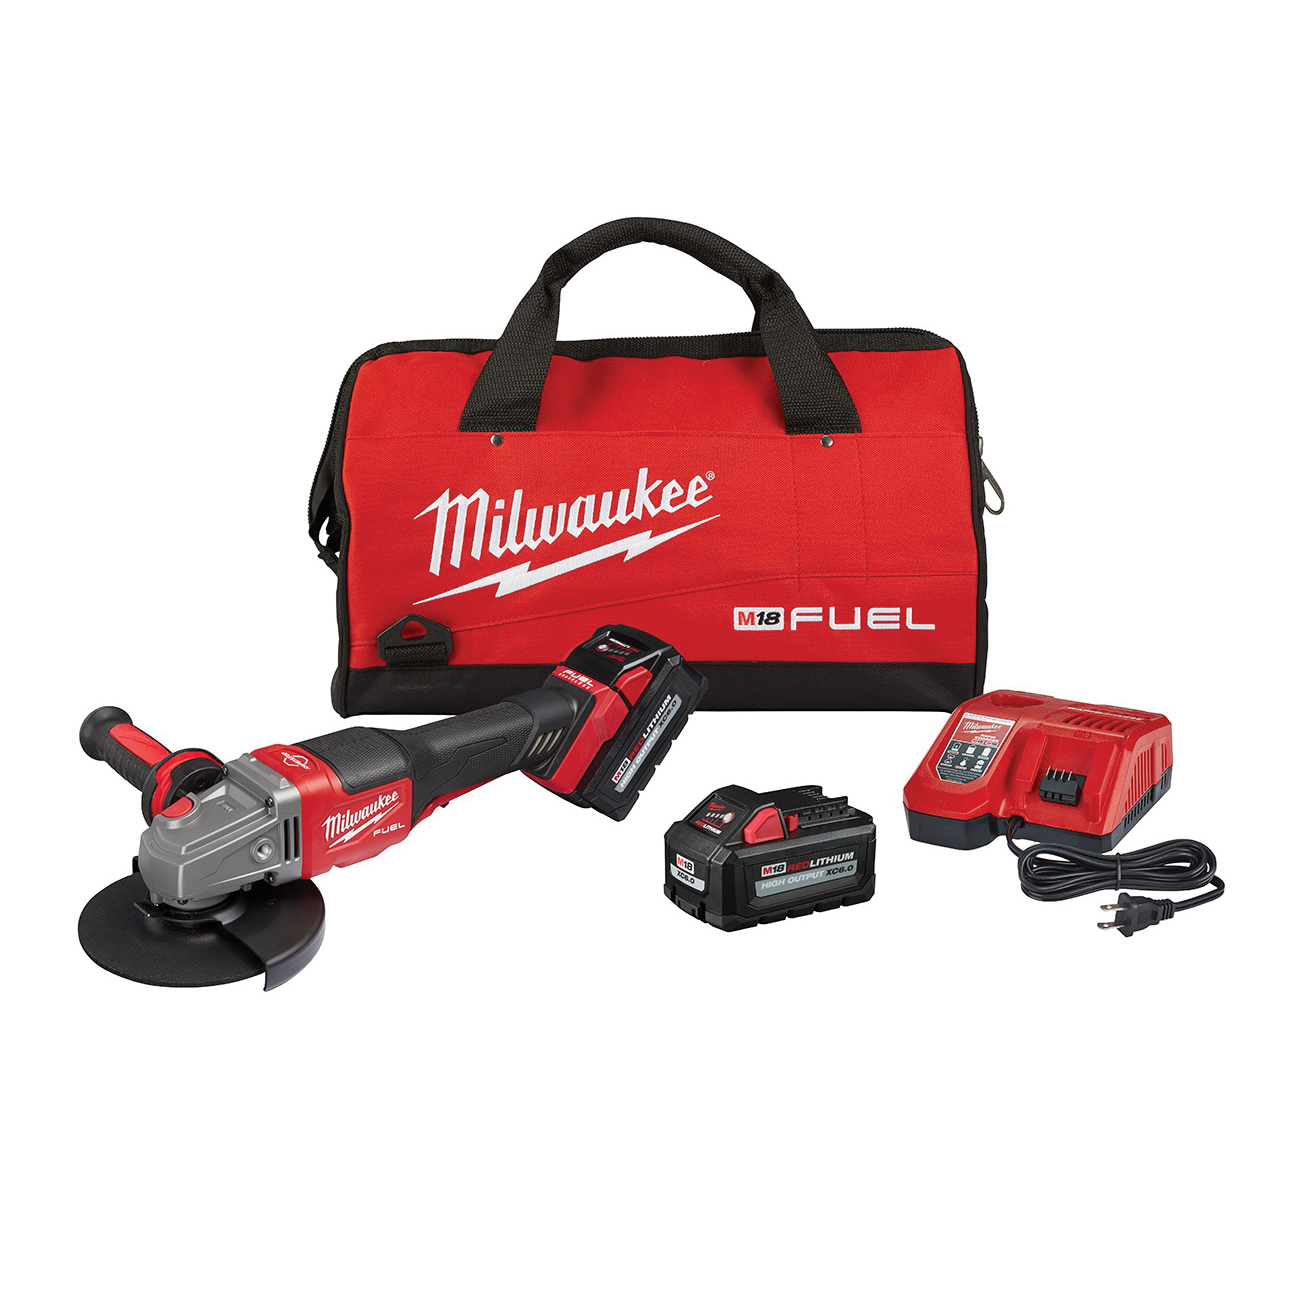 Milwaukee® M18 FUEL™ 2980-21 Braking Small Cordless Angle Grinder Kit With Paddle Switch Kit, 6 in Dia Wheel, 5/8 in Arbor/Shank, 18 V, Lithium-Ion Battery, 1 Batteries, Paddle Switch